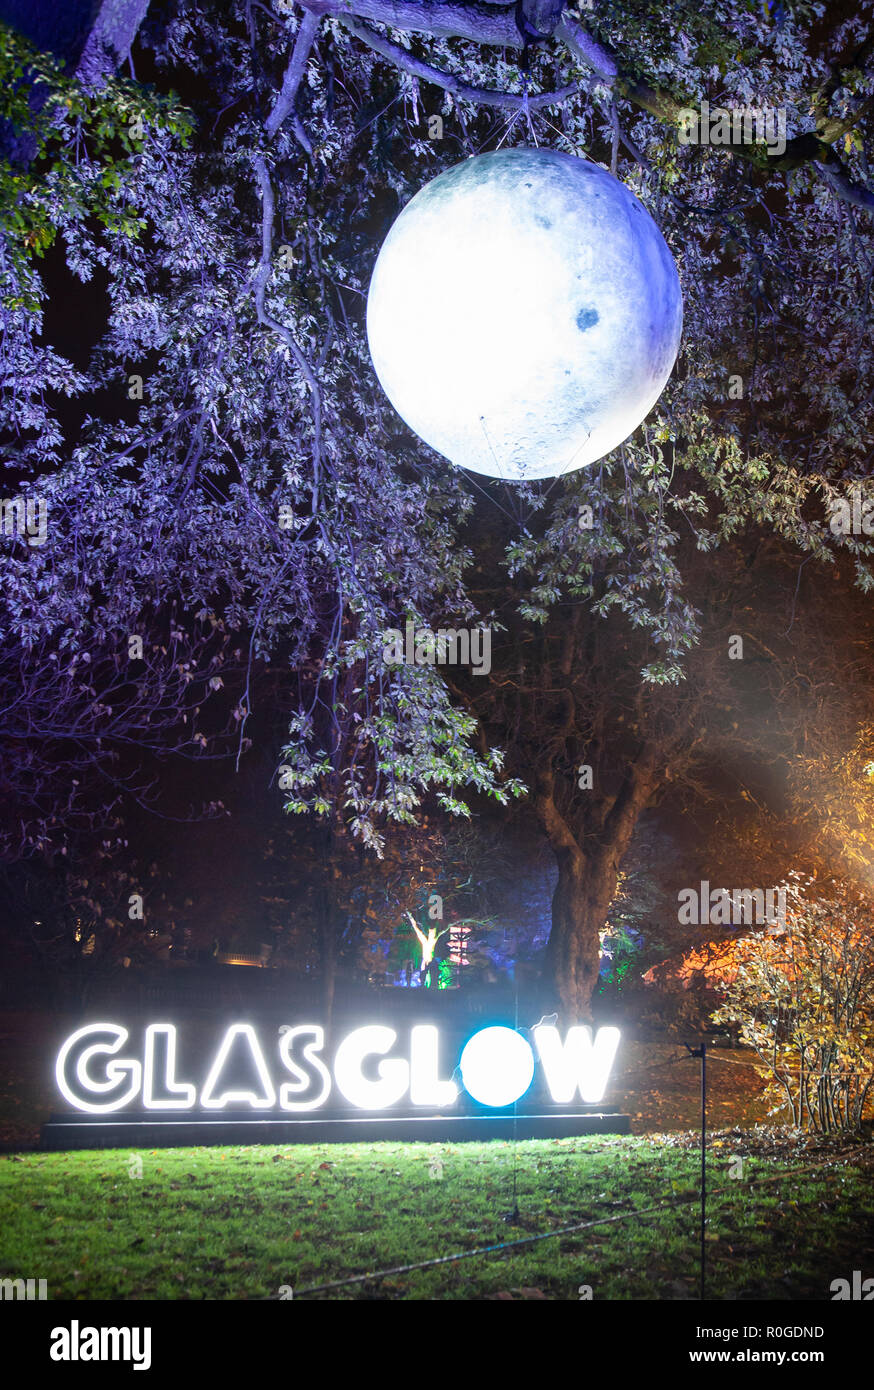 Sign at the entrance to GlasGLOW, a winter event in Glasgow when the Botanic Gardens are lit up at night. - Stock Image